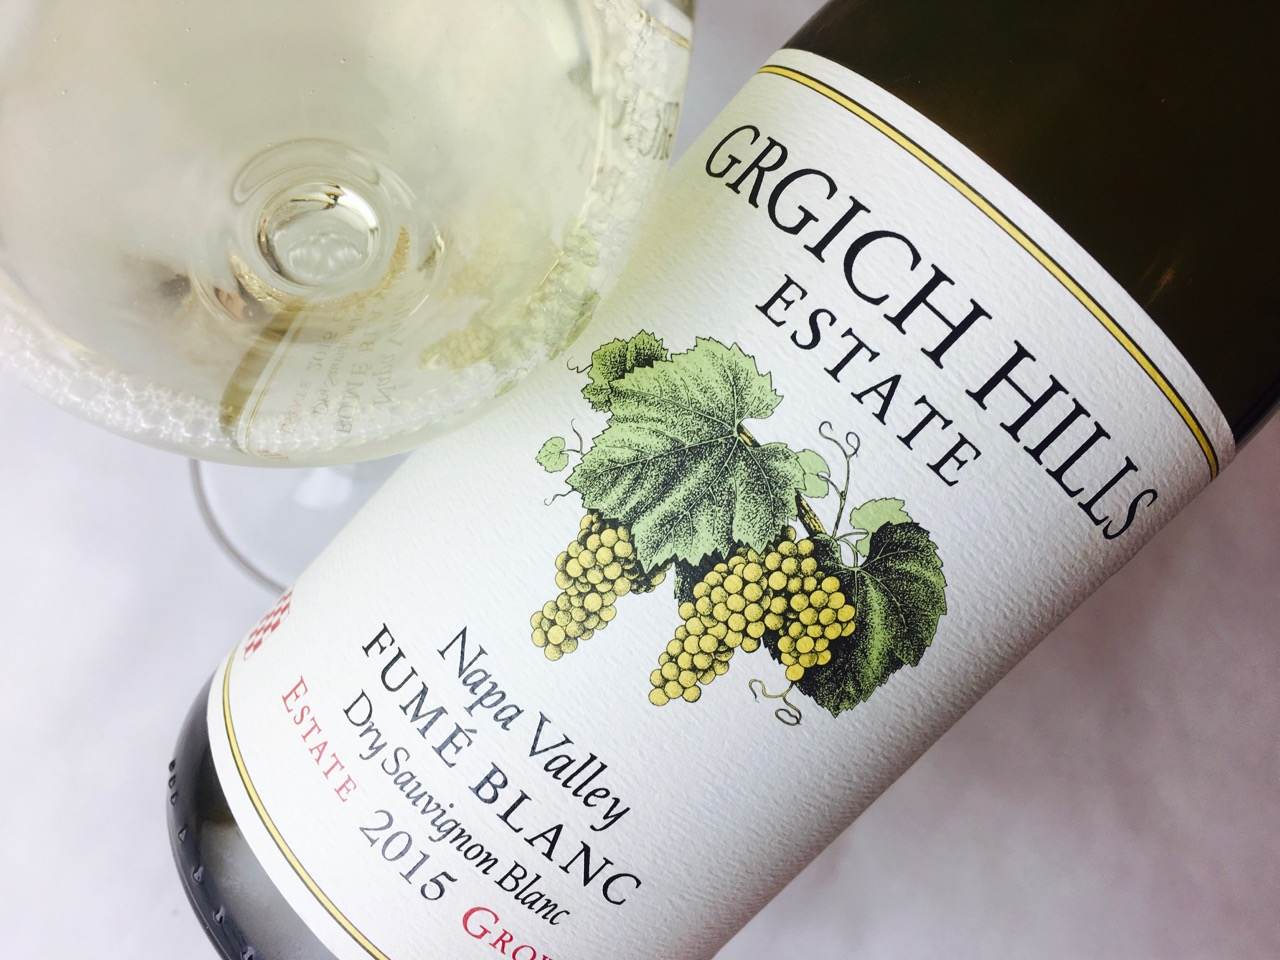 2015 Grgich Hills Estate Fumé Blanc Napa Valley